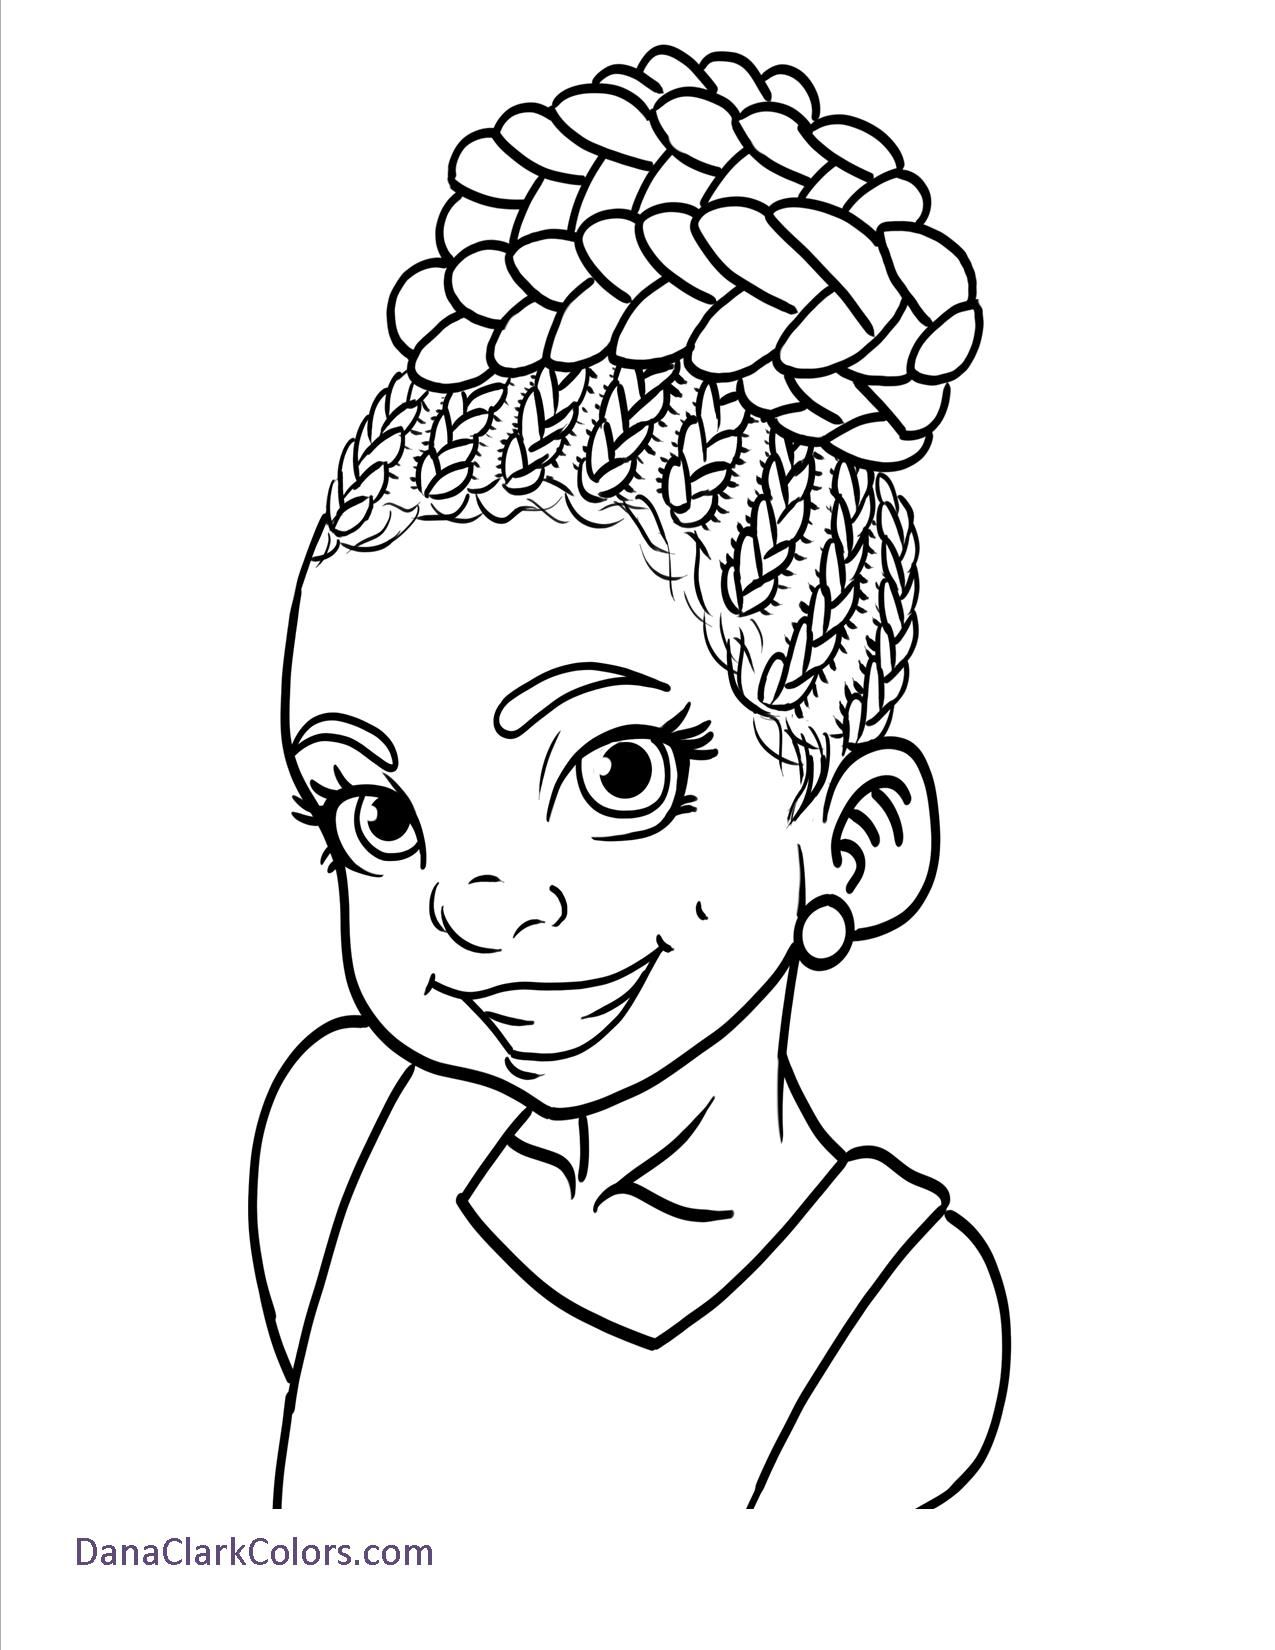 BARBIE COLORING PAGES: BLACK - OR ETHNIC - BARBIE COLORING SHEET ...